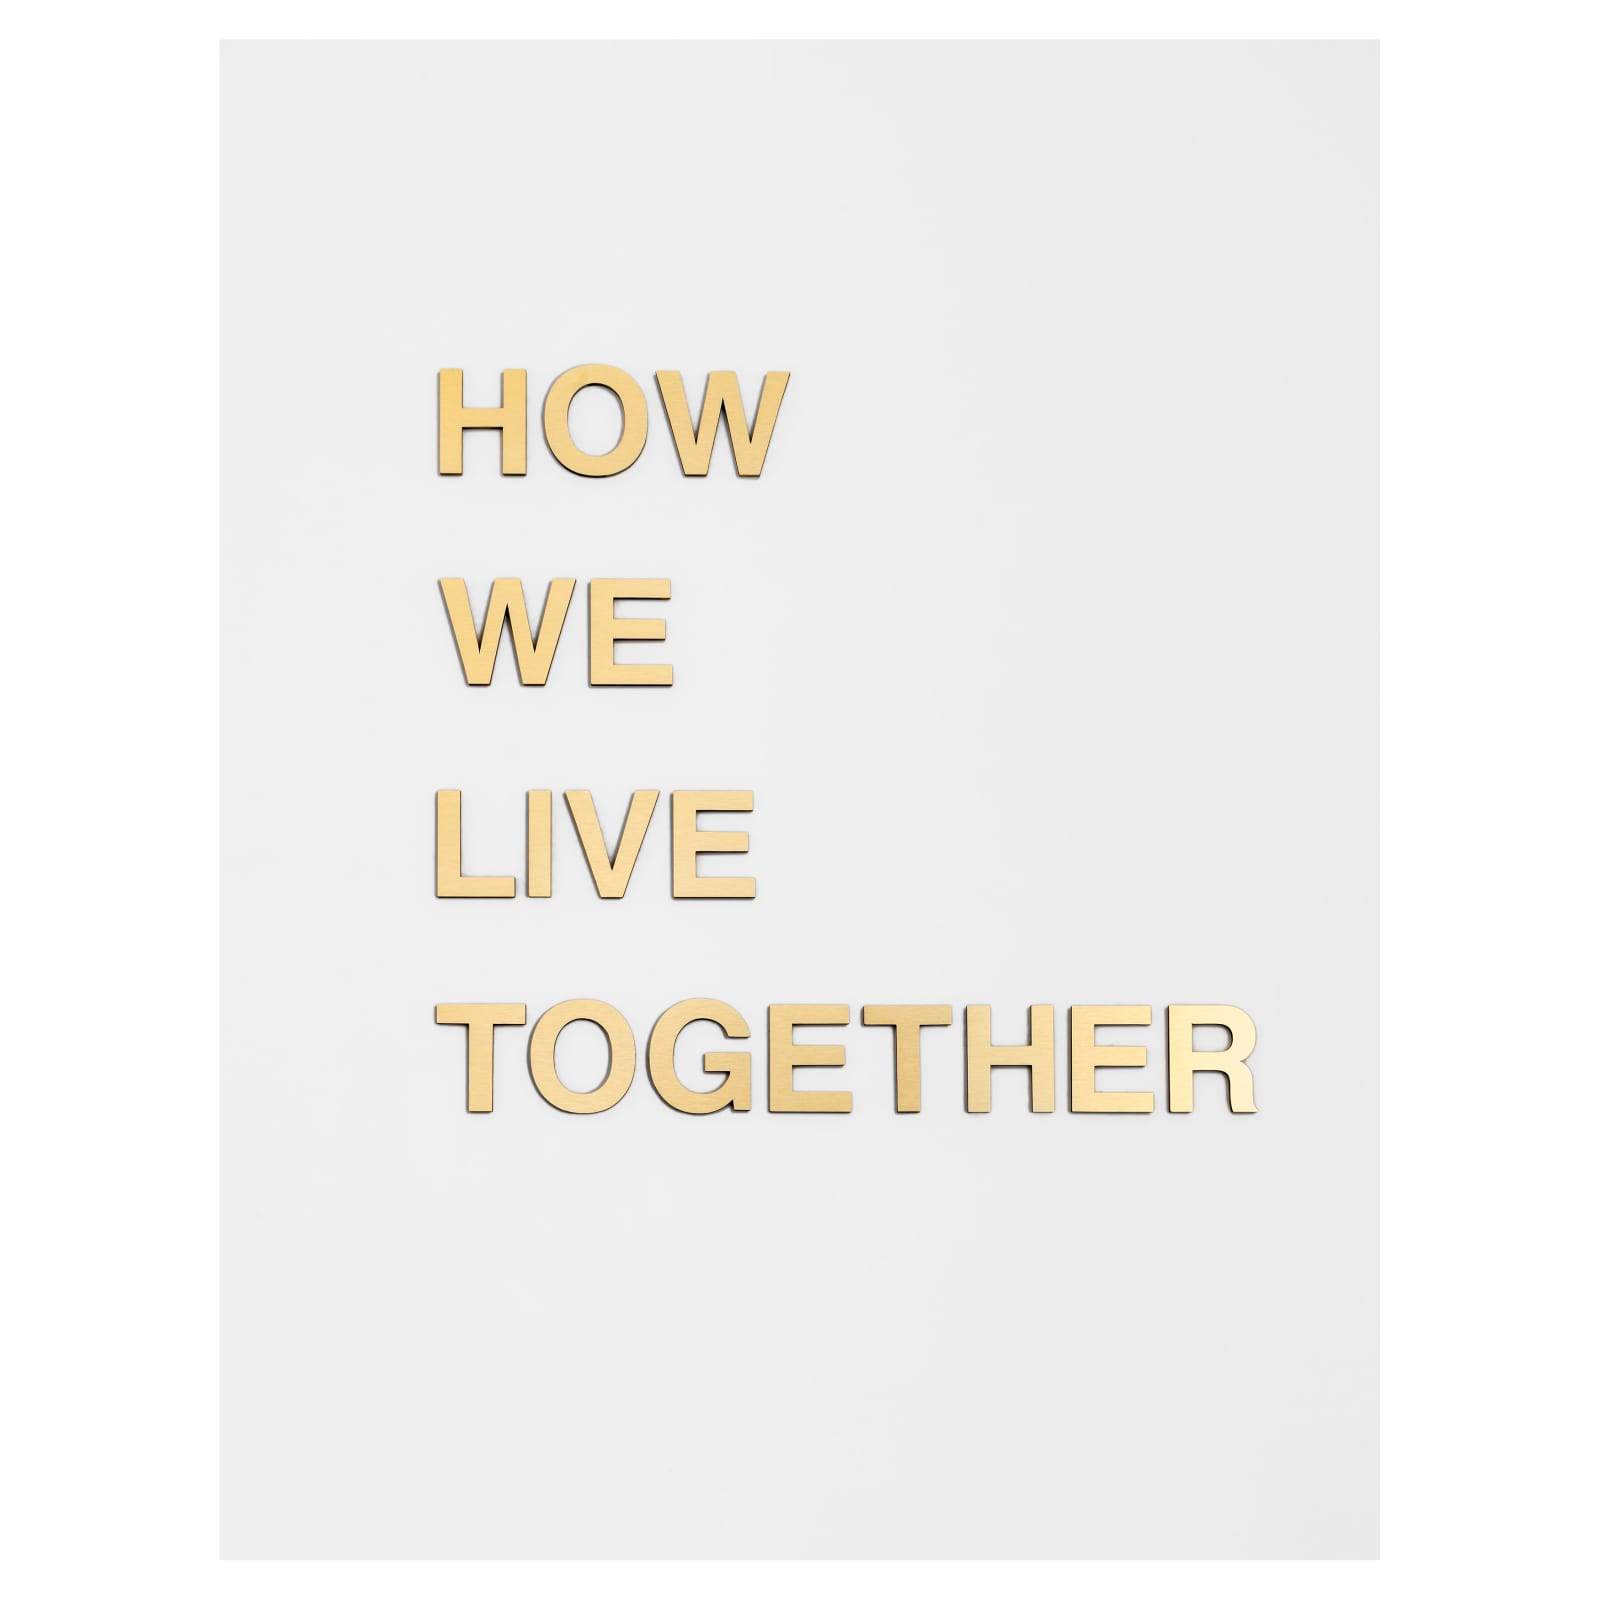 Anne Katrine Senstad  How We Live Together, 2018  Wood, brushed brass aluminum  35 x 38 x 1/2 in  88.9 x 96.5 x 1.3 cm  Edition of 3